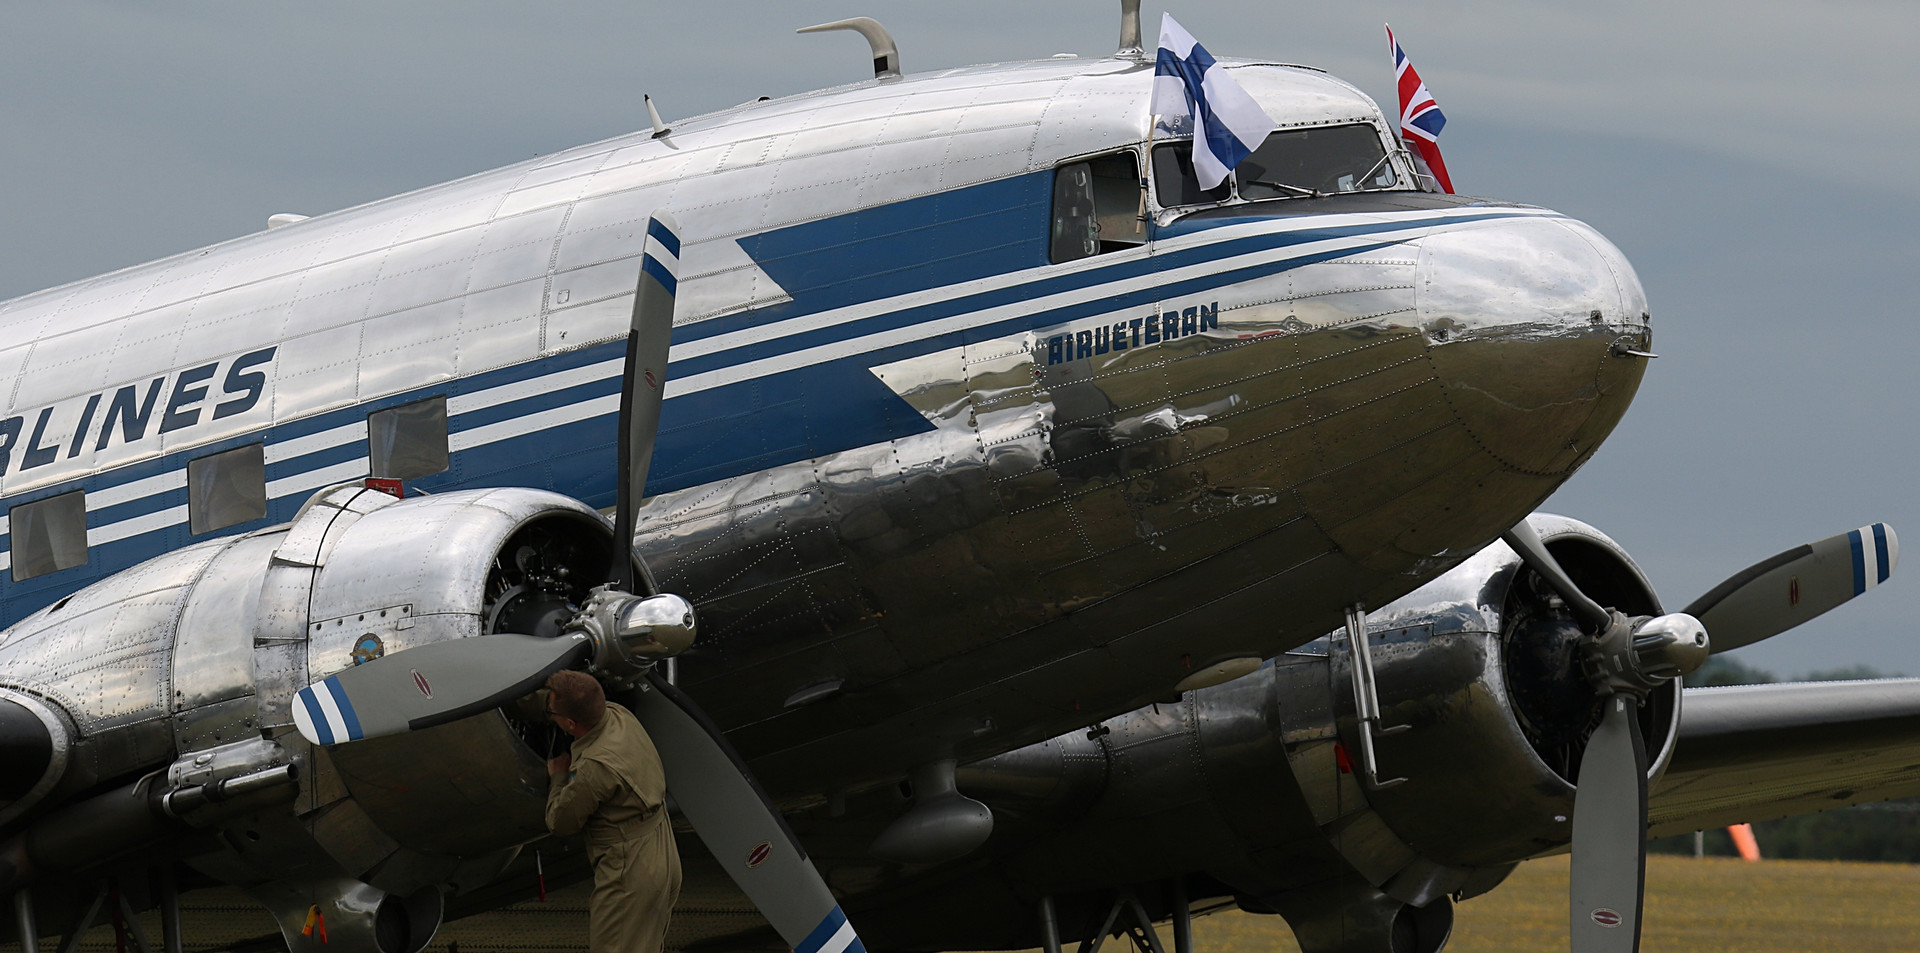 Finnish Airlines Daks over Duxford June